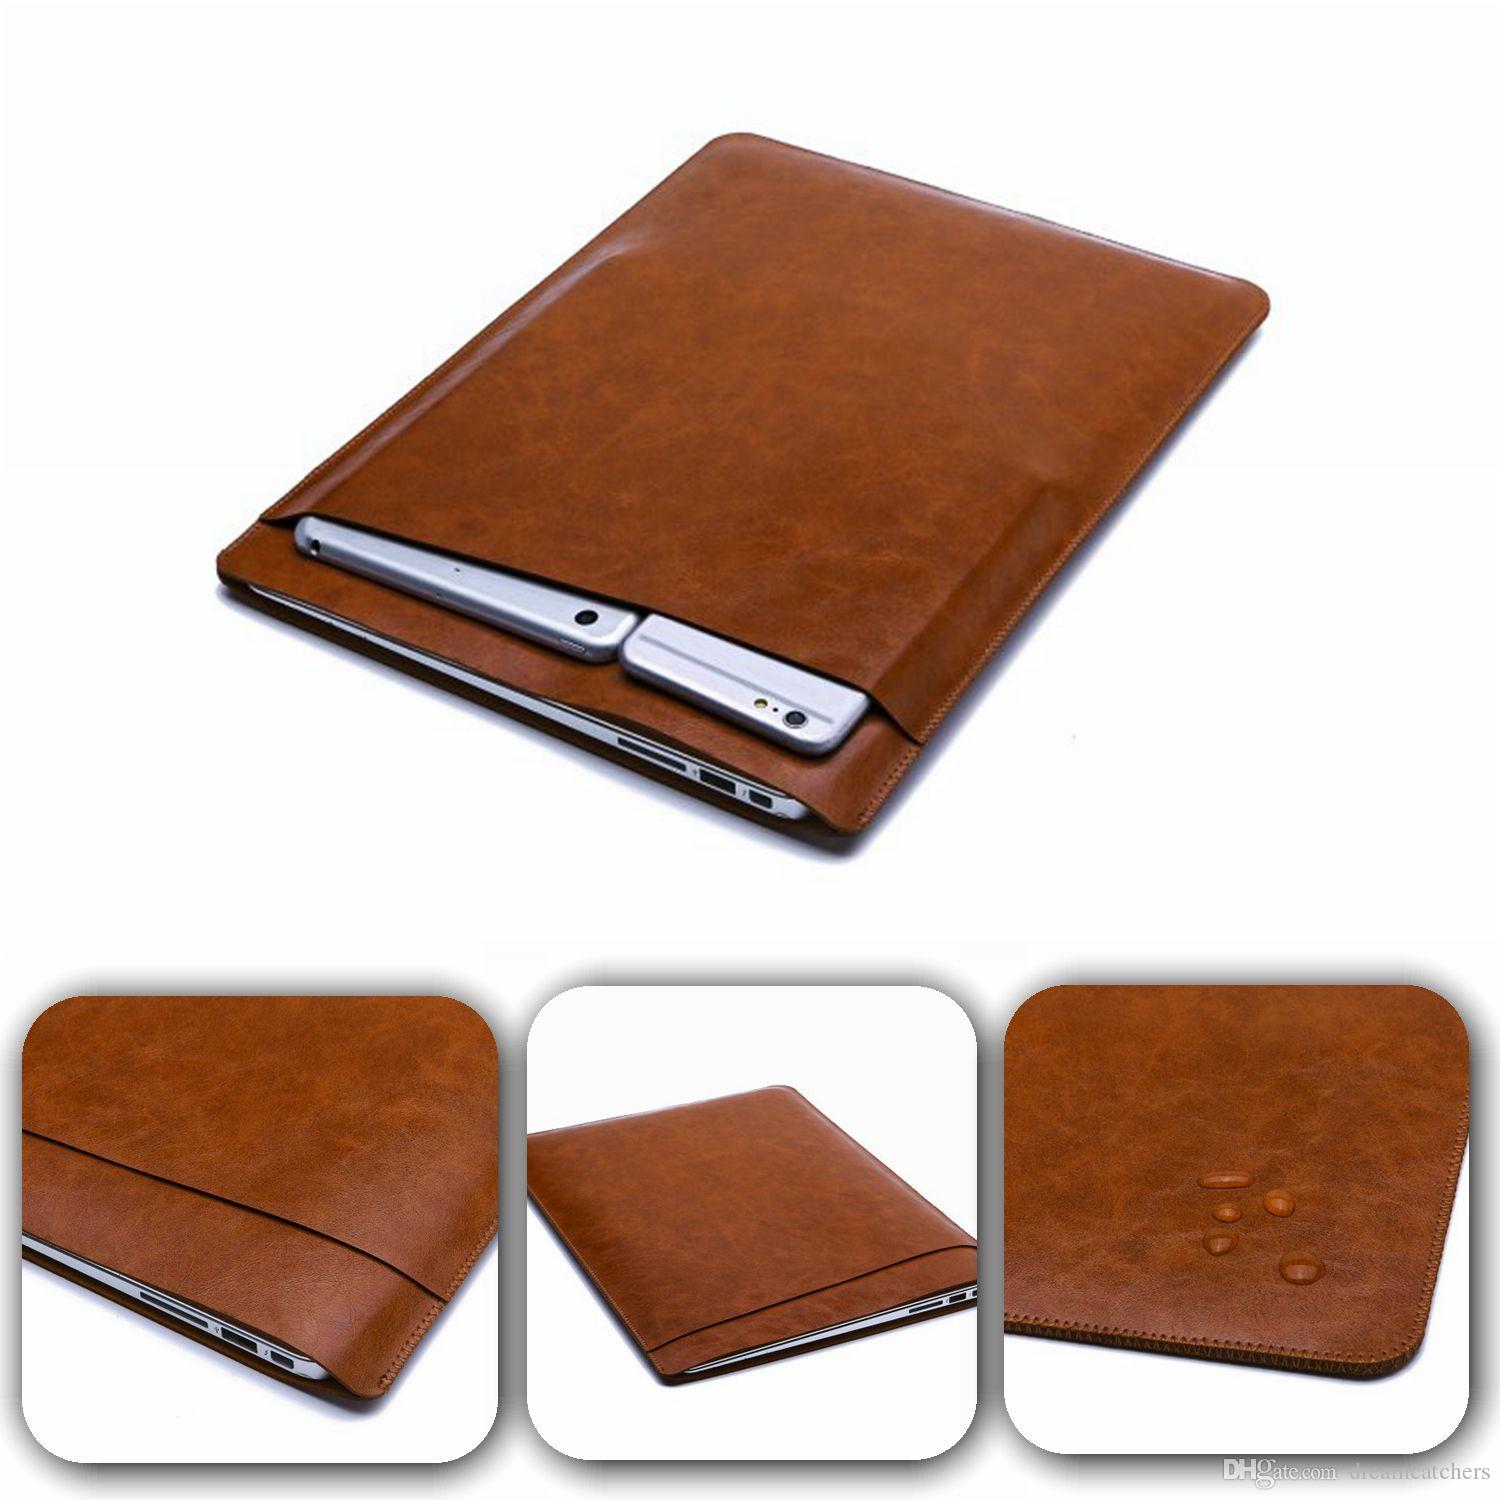 Luxury Retina Sleeve Case Double-deck Pouch Pocket Macbook Laptop Bags PU Leather Protective Cover for Apple MacBook air 11 13 12 inch